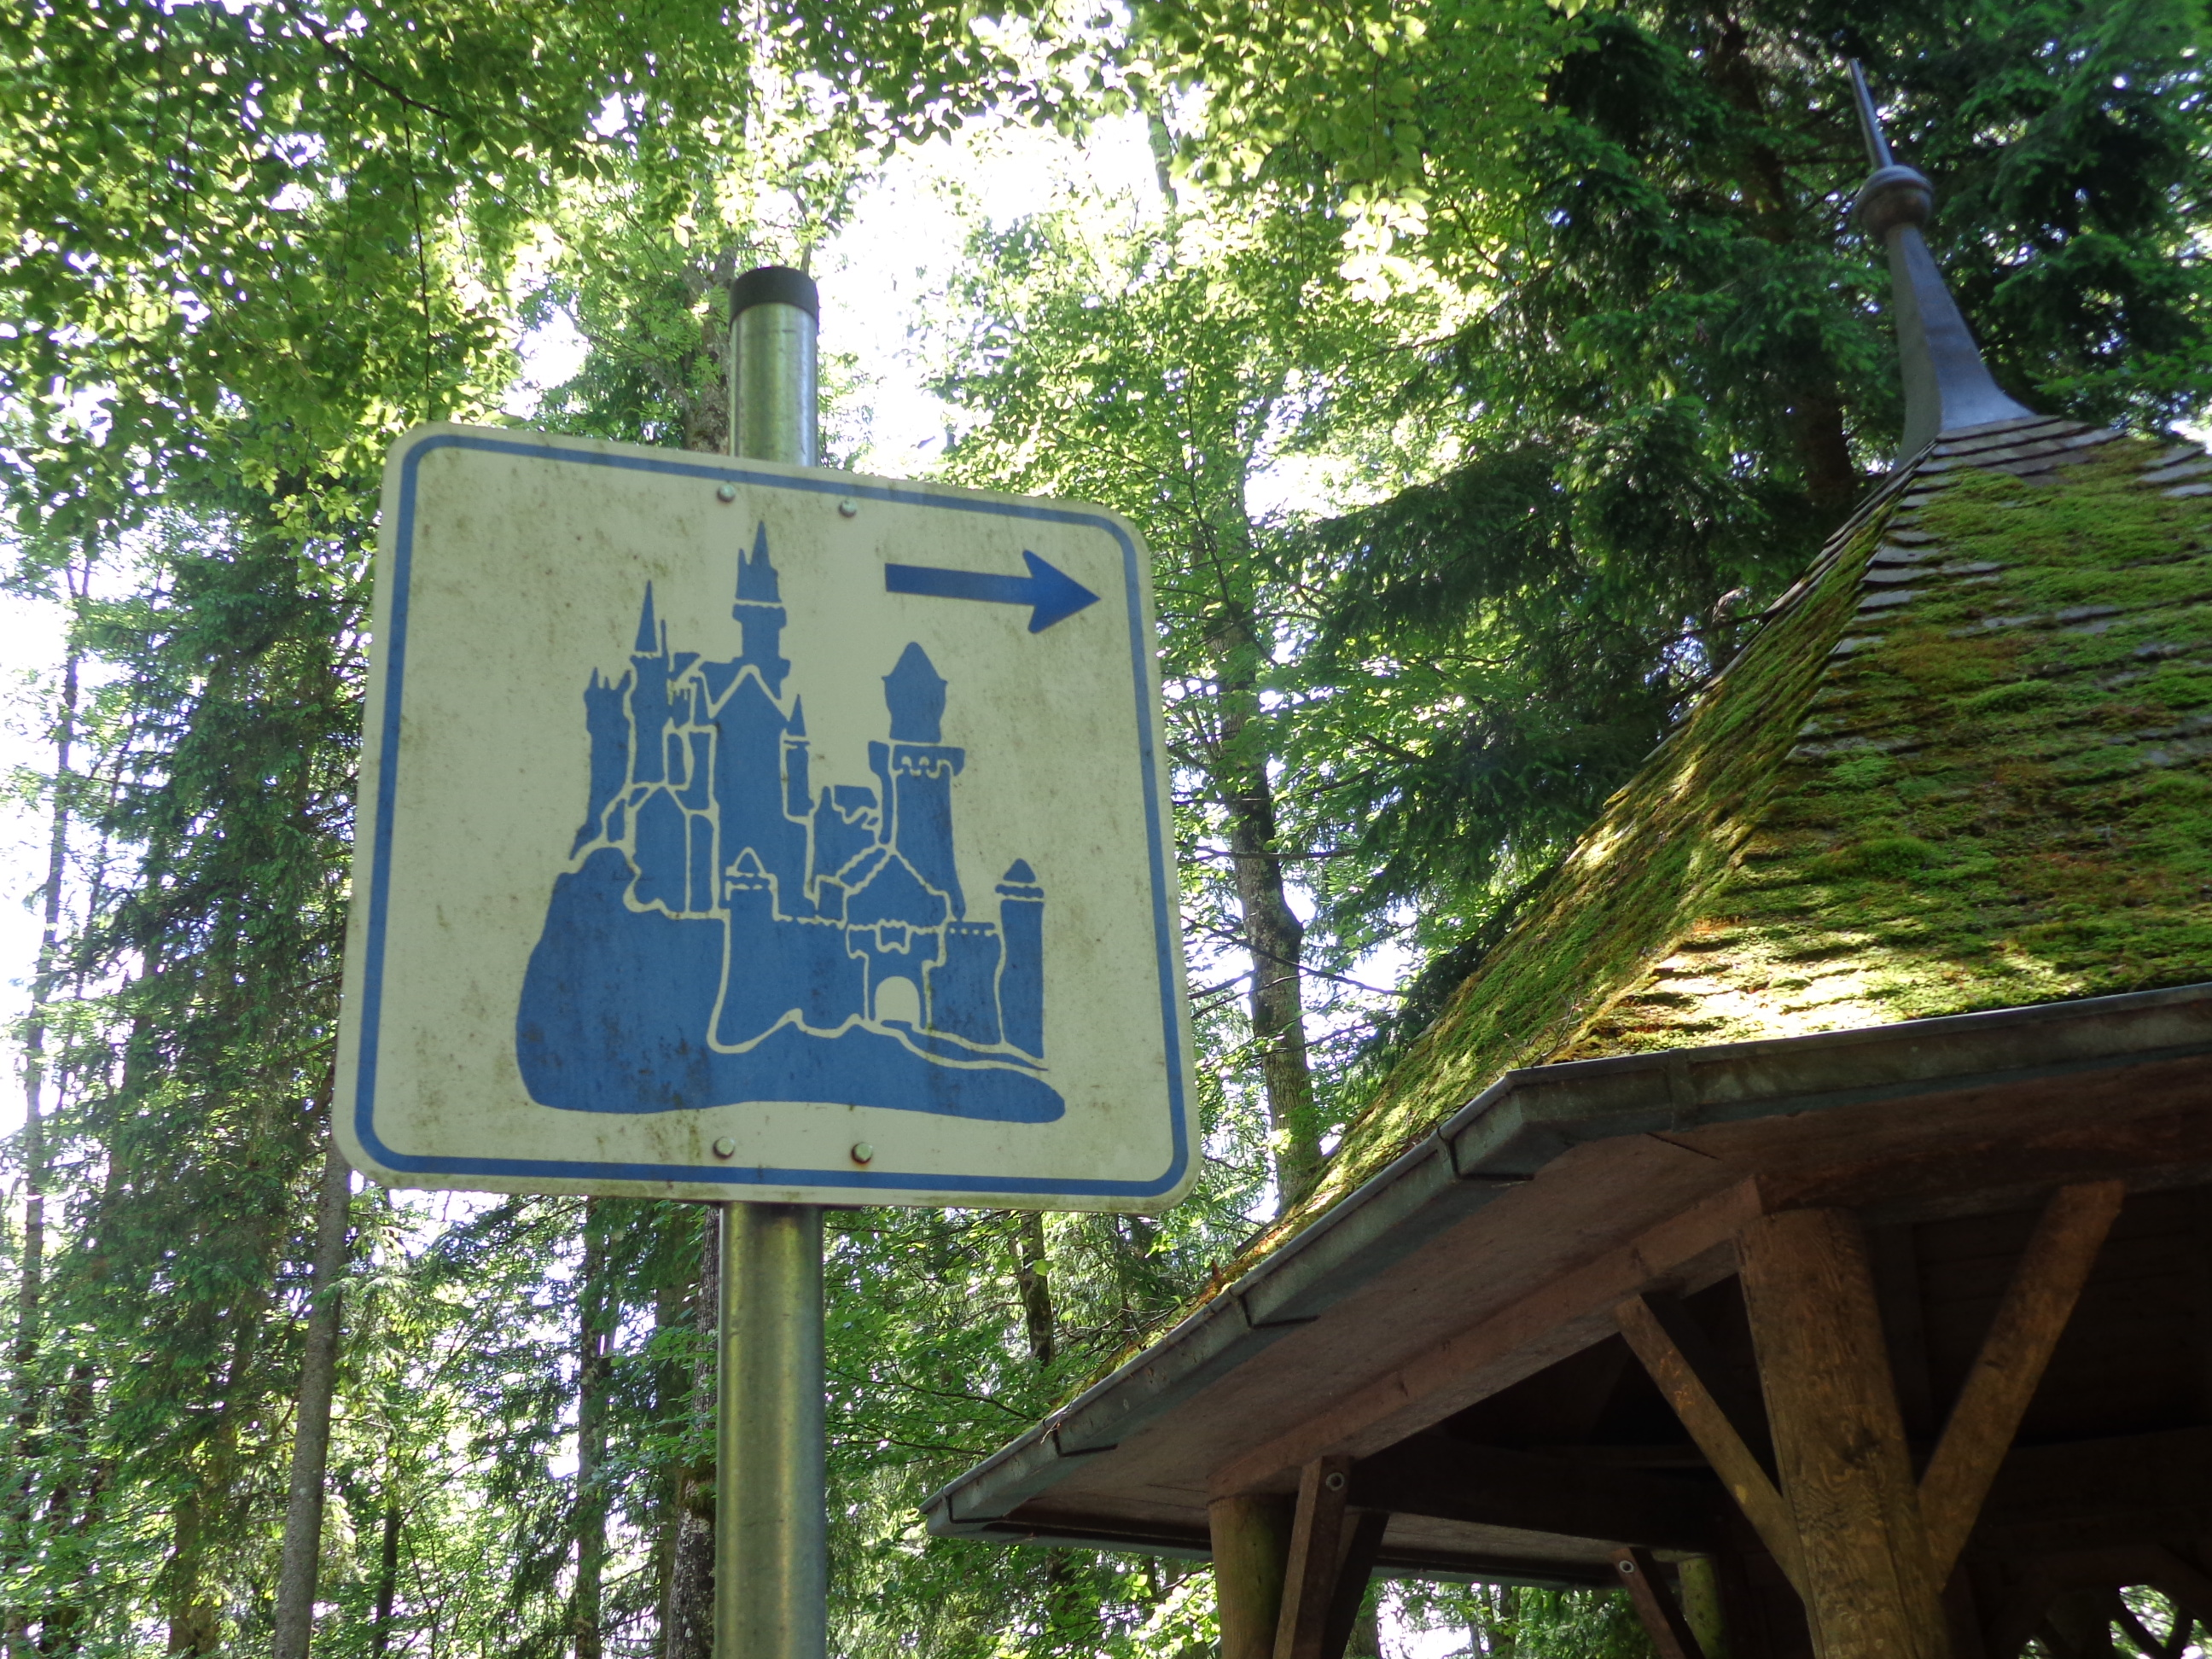 Castle sign in Bavaria, Germany